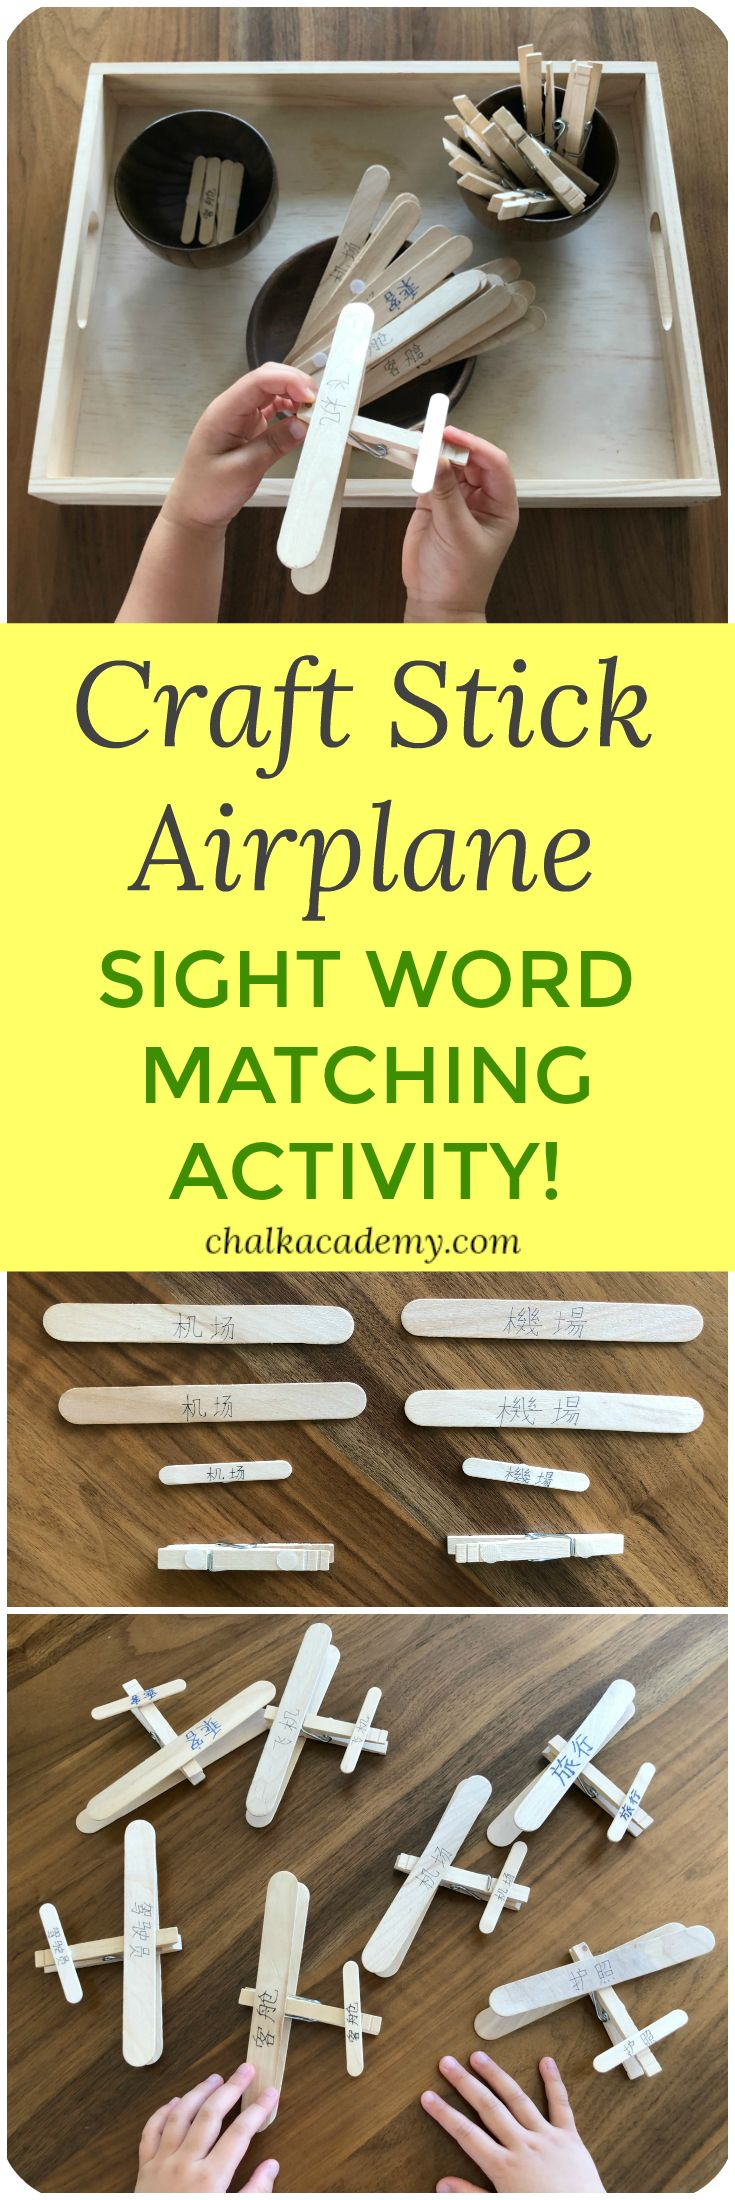 Craft sticks, clothespins, and mini Velcro coins are the ingredients to this Craft Stick Airplane word-matching activity!  This is a fun way to learn Chinese vocabulary related to airplanes! Preschool | Elementary school | STEAM for kids | Easy DIY | Transportation craft | Homeschool | Learn chinese | STEM